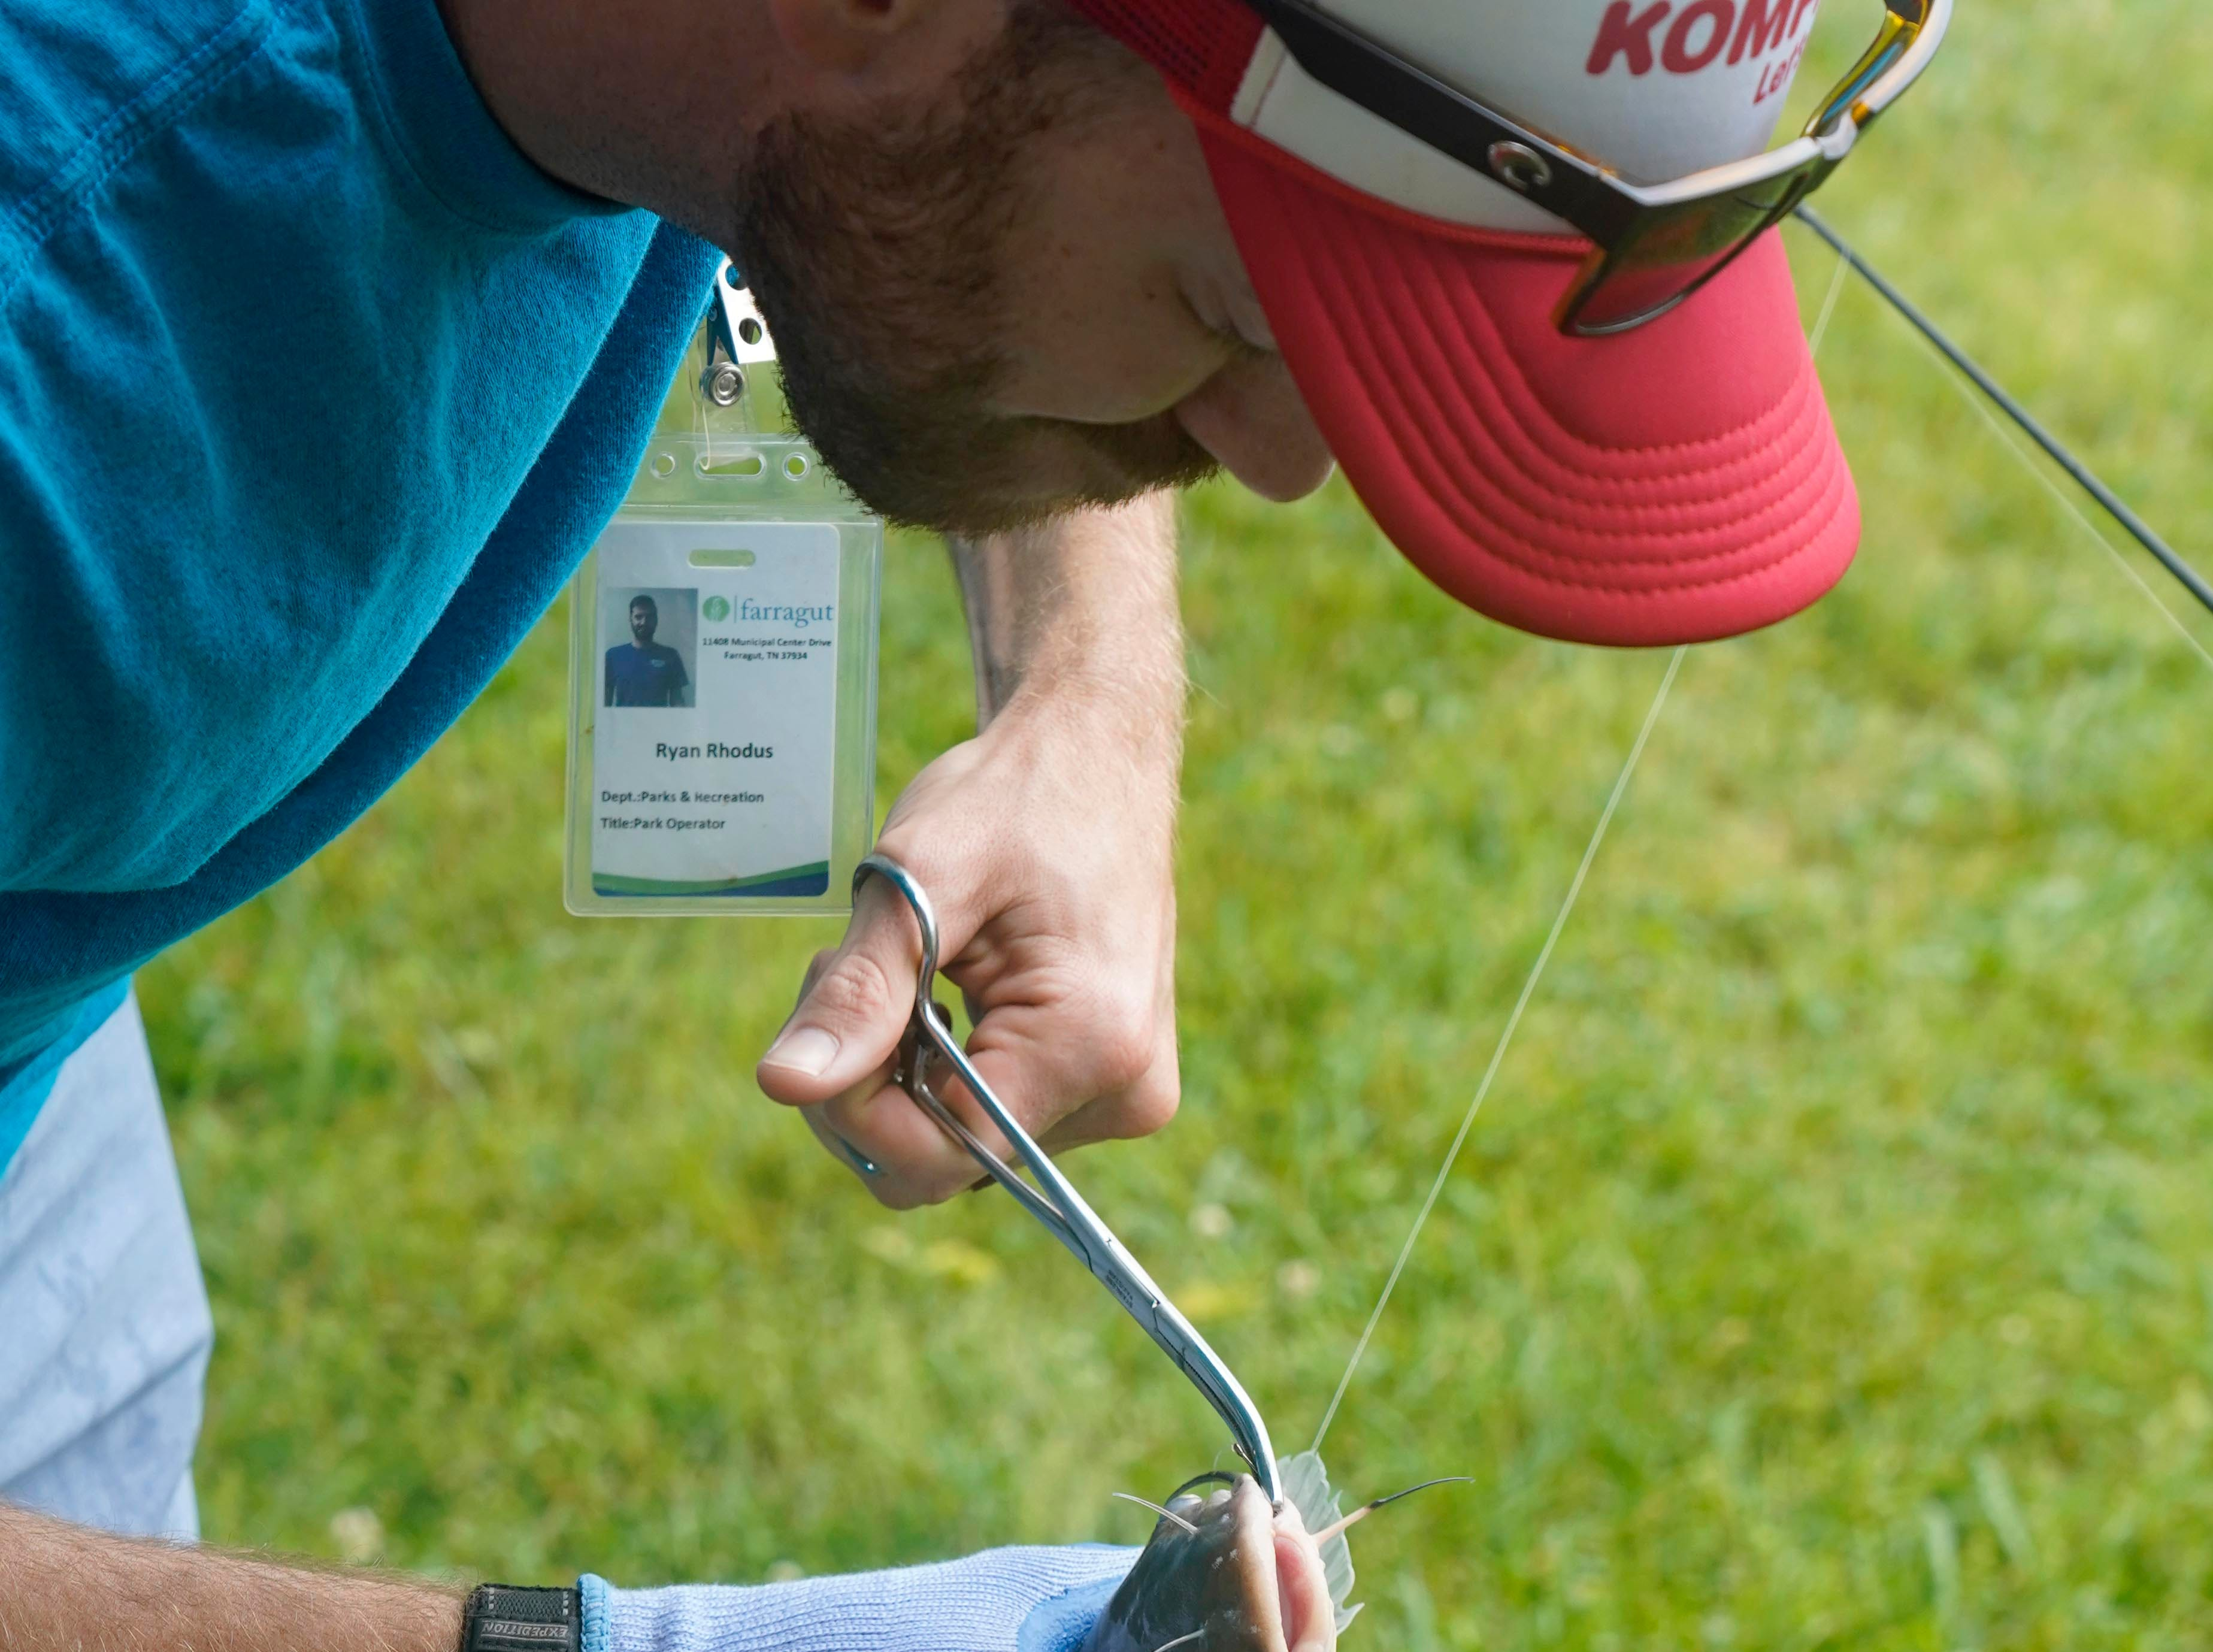 Ryan Rhodus, with the Town of Farragut, removes a hook  before weighing a fish during the 35th Annual Bob Watt Youth Fishing Rodeo was held Saturday, May. 11, 2019 at Anchor Park on Turkey Creek Road.